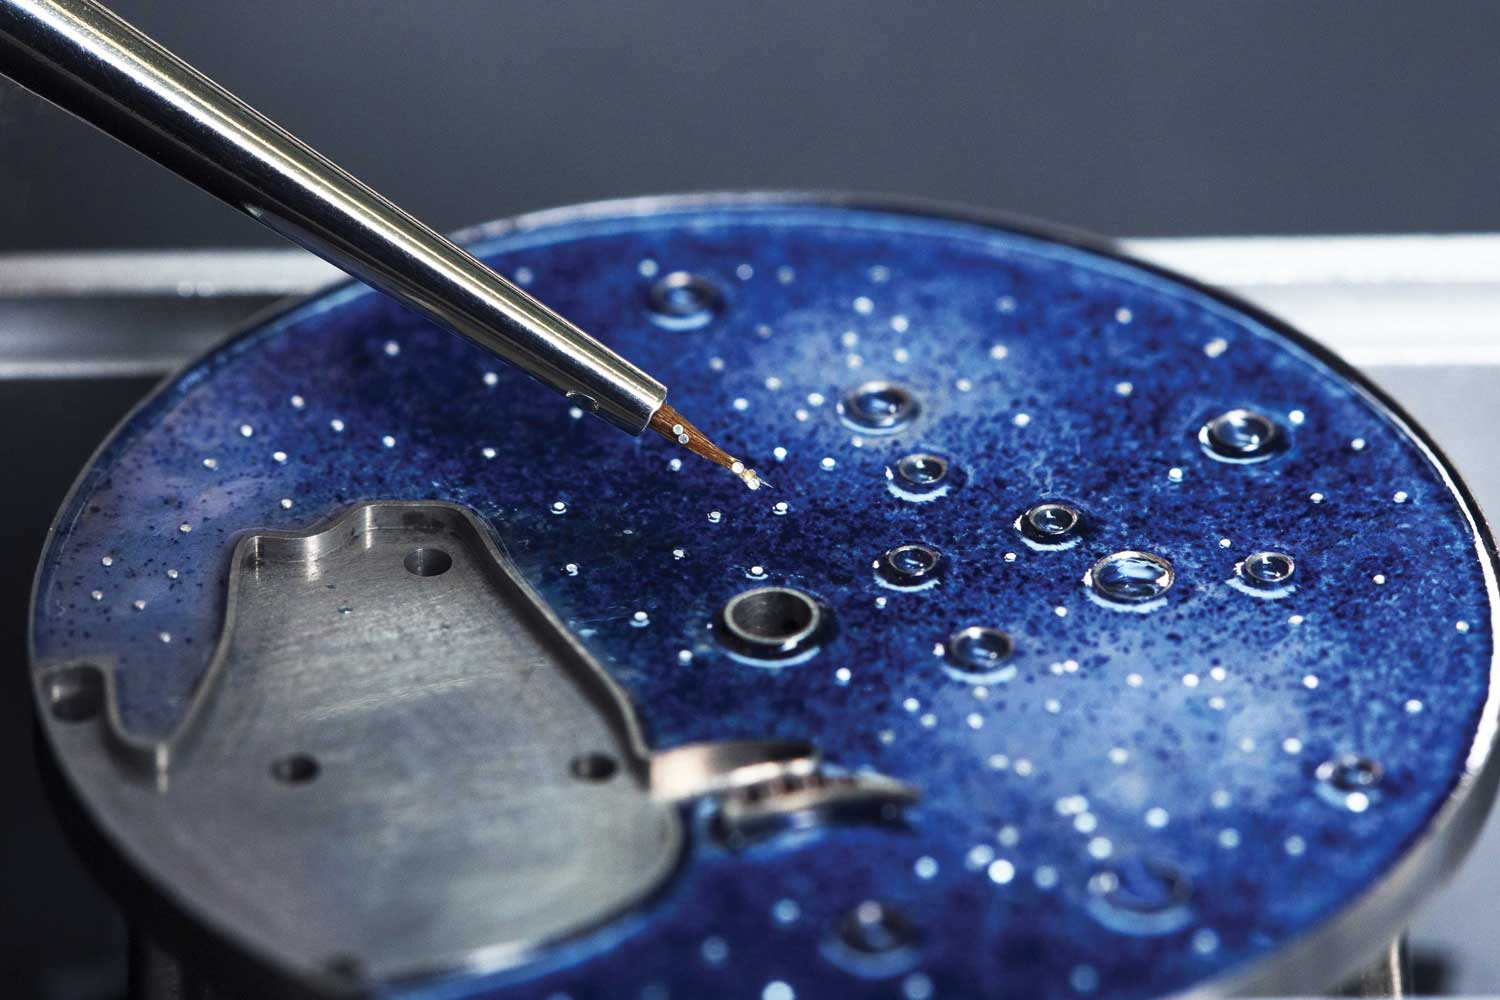 The deep blue enamel dial features white gold sculpting and colored enamel accents